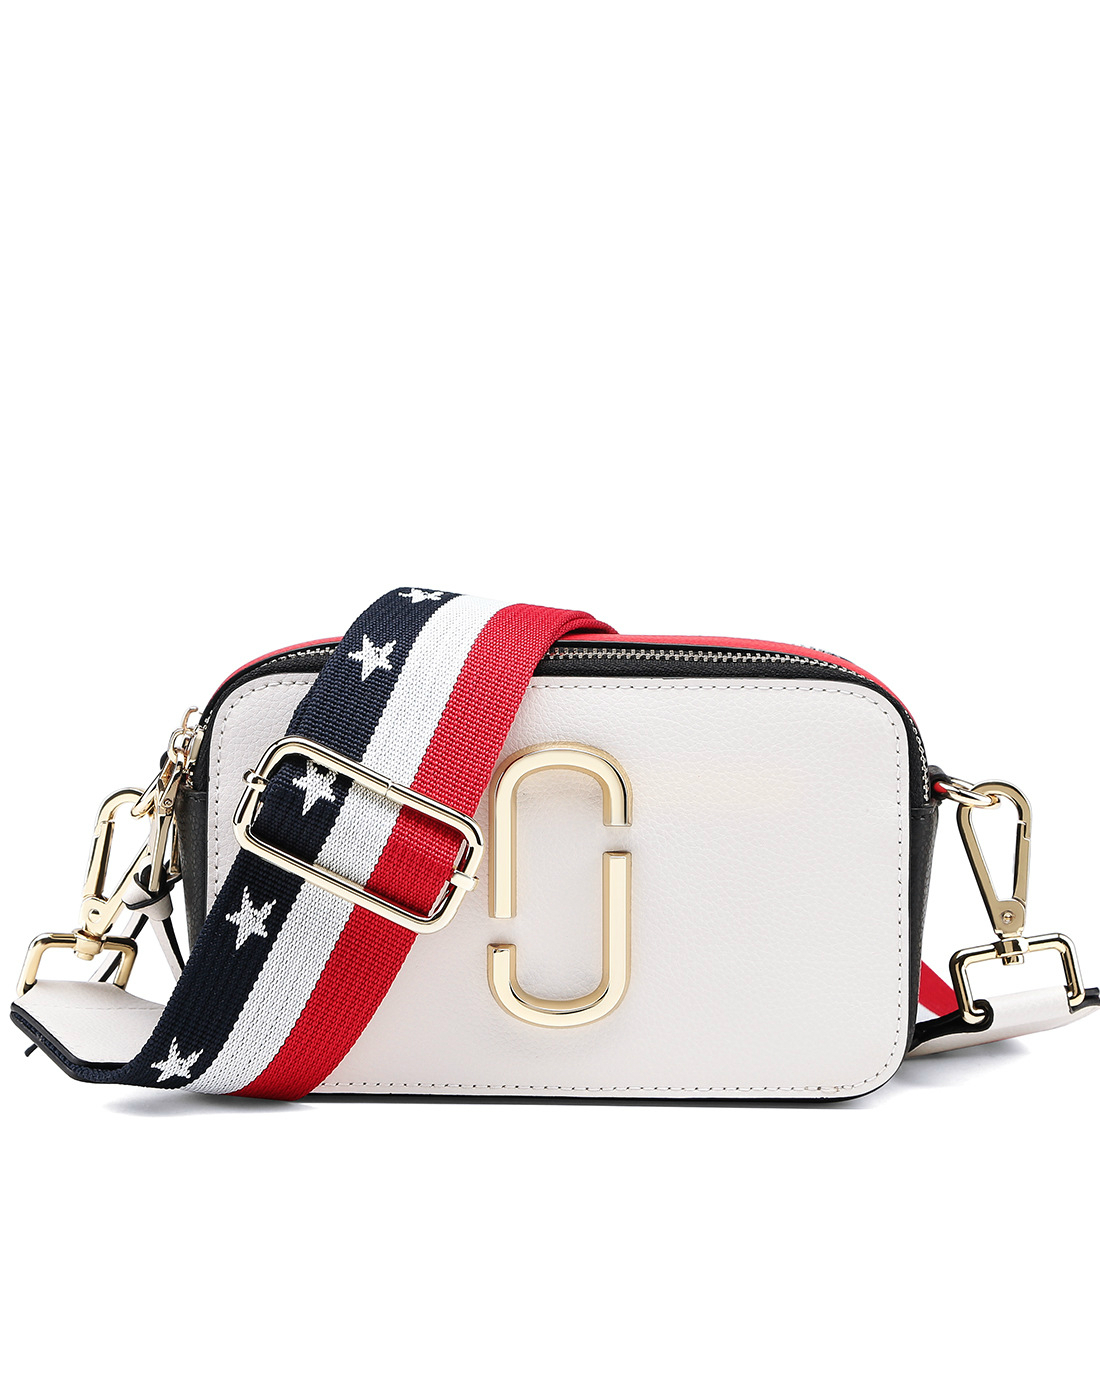 HEEL 2019New small square packets shoulder oblique Korean version of fashion Splice color casual women 39 s bag Free shipp in Shoulder Bags from Luggage amp Bags